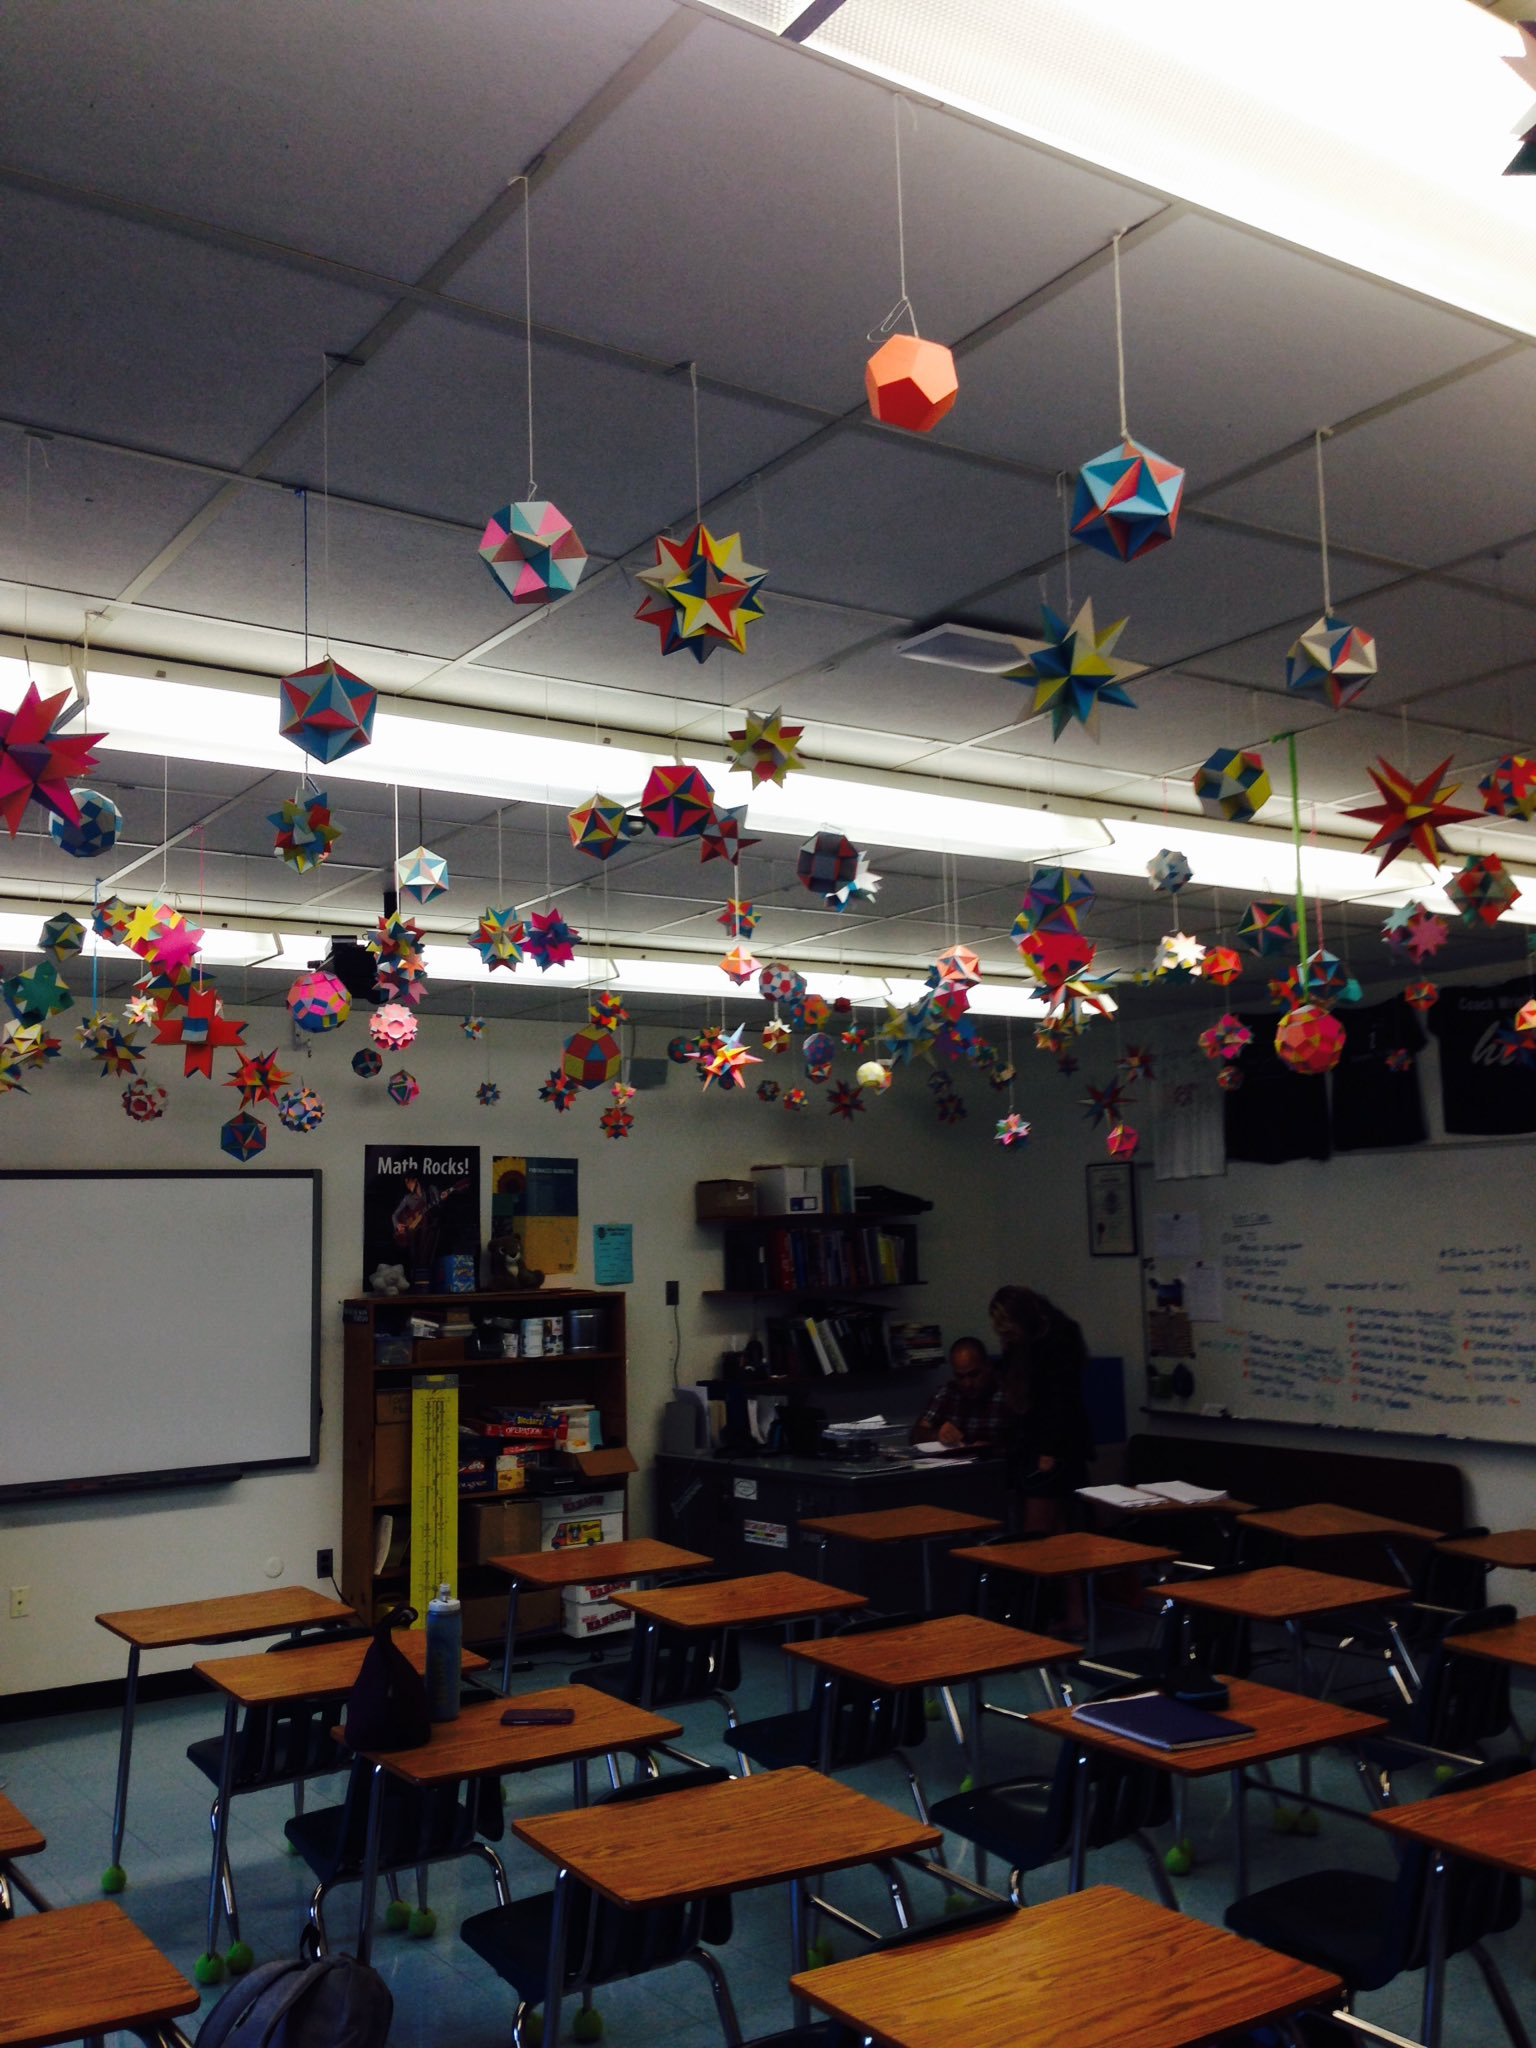 Mornin' #vted! Just hanging out in #therealwillwright's math classroom...can't help notice the decor https://t.co/jZWt3x4SC3